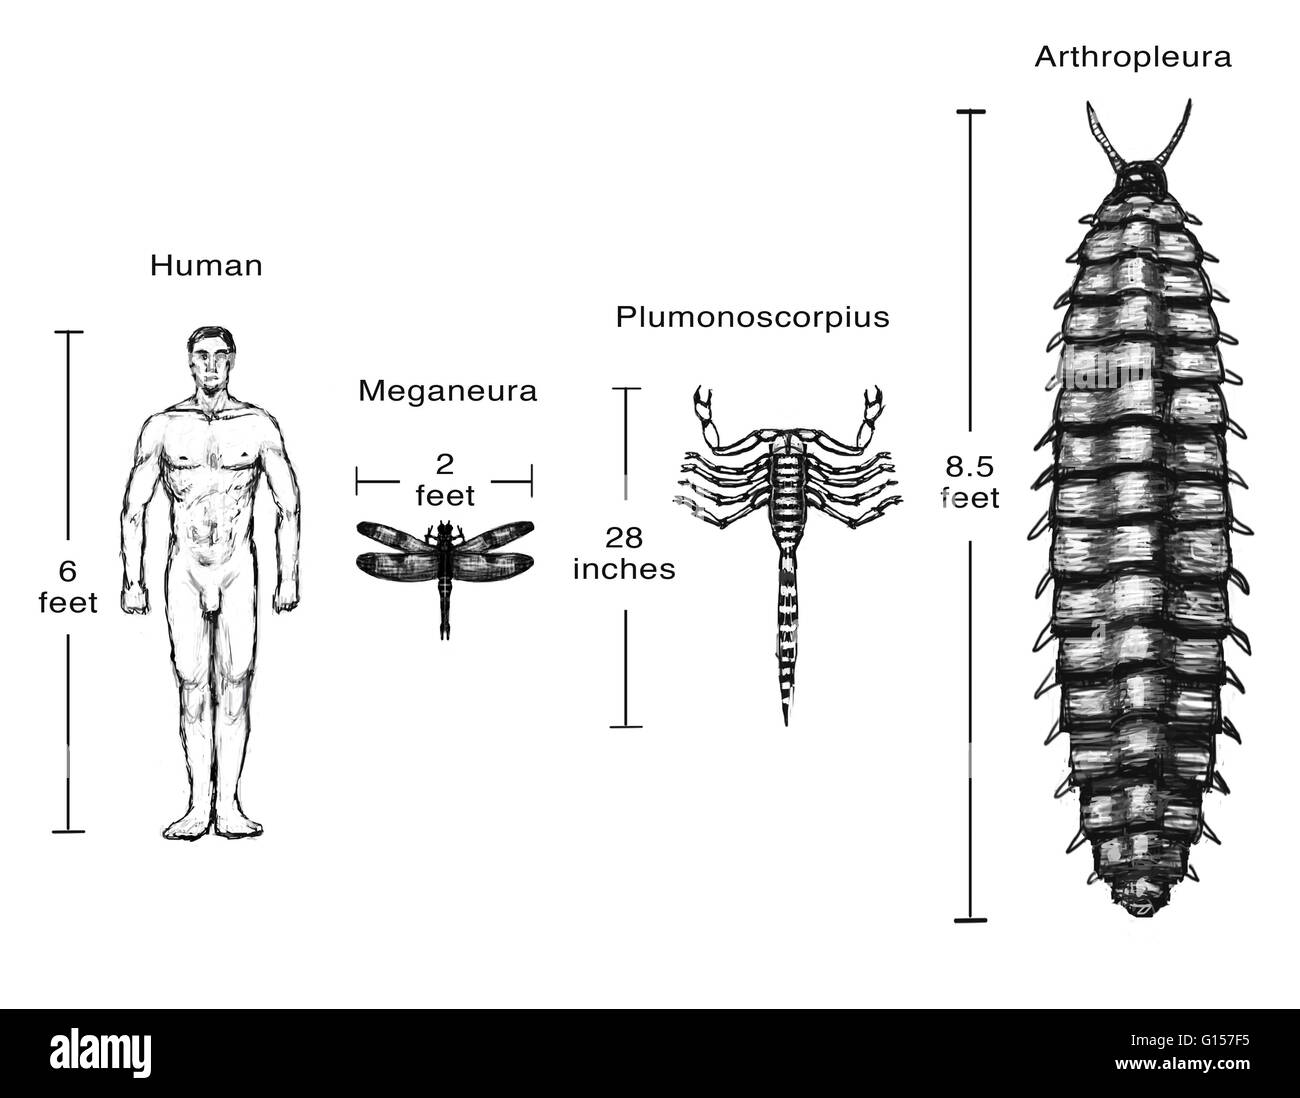 Illustration comparing the size of some animals from the Carboniferous period to the average size of a human man. Stock Photo